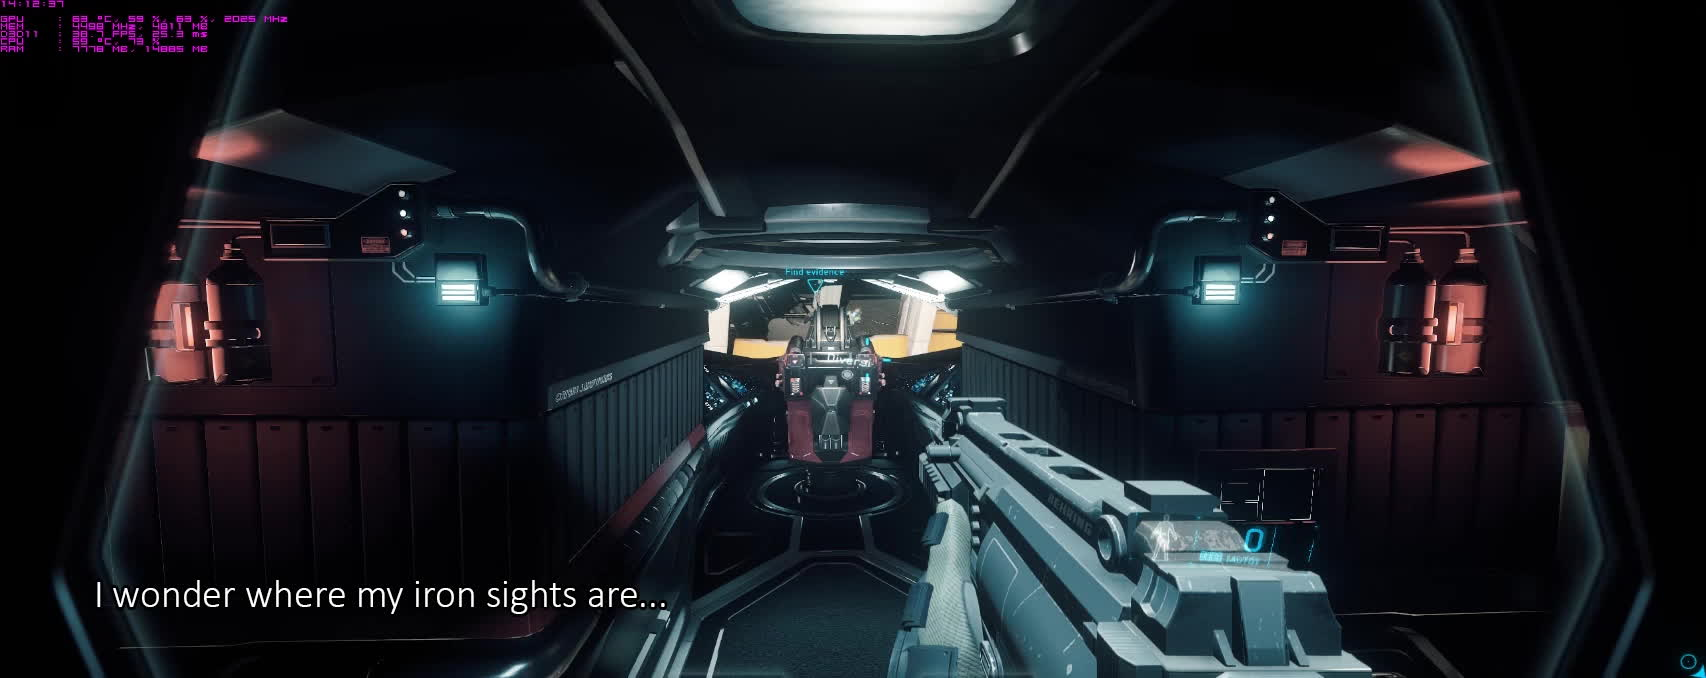 funny, starcitizen, Perfectly normal day in StarCitizen GIFs